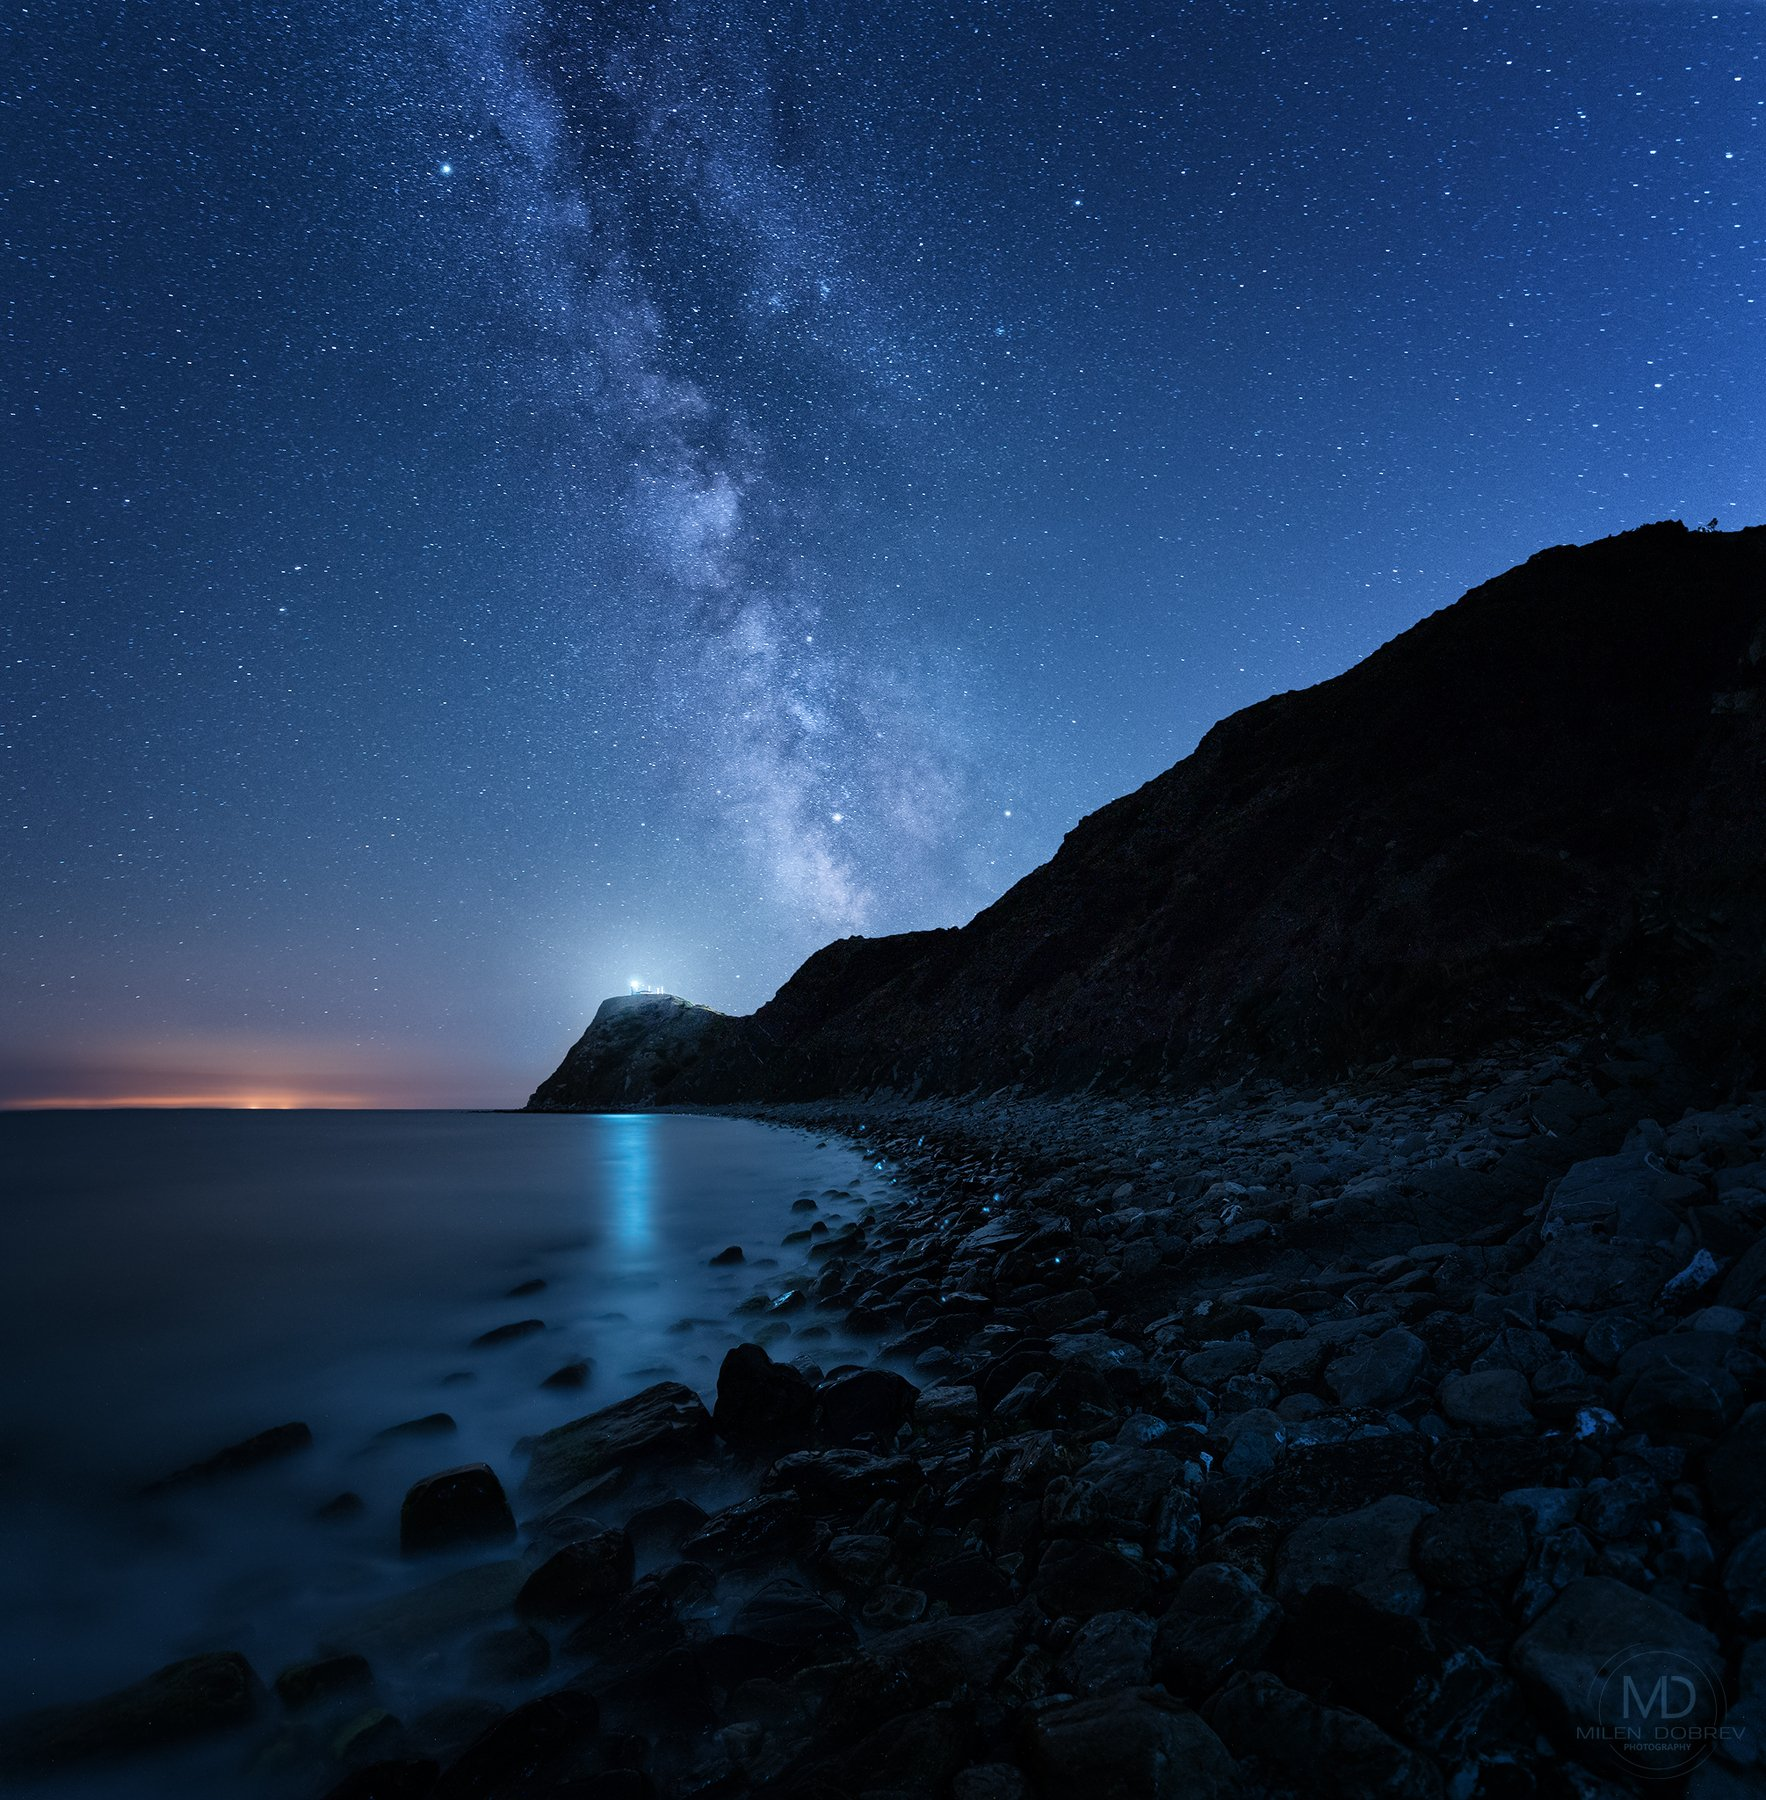 Bulgaria, nightphotography, Milky way, Balkan, stars, night, lighthouse, Милен Добрев